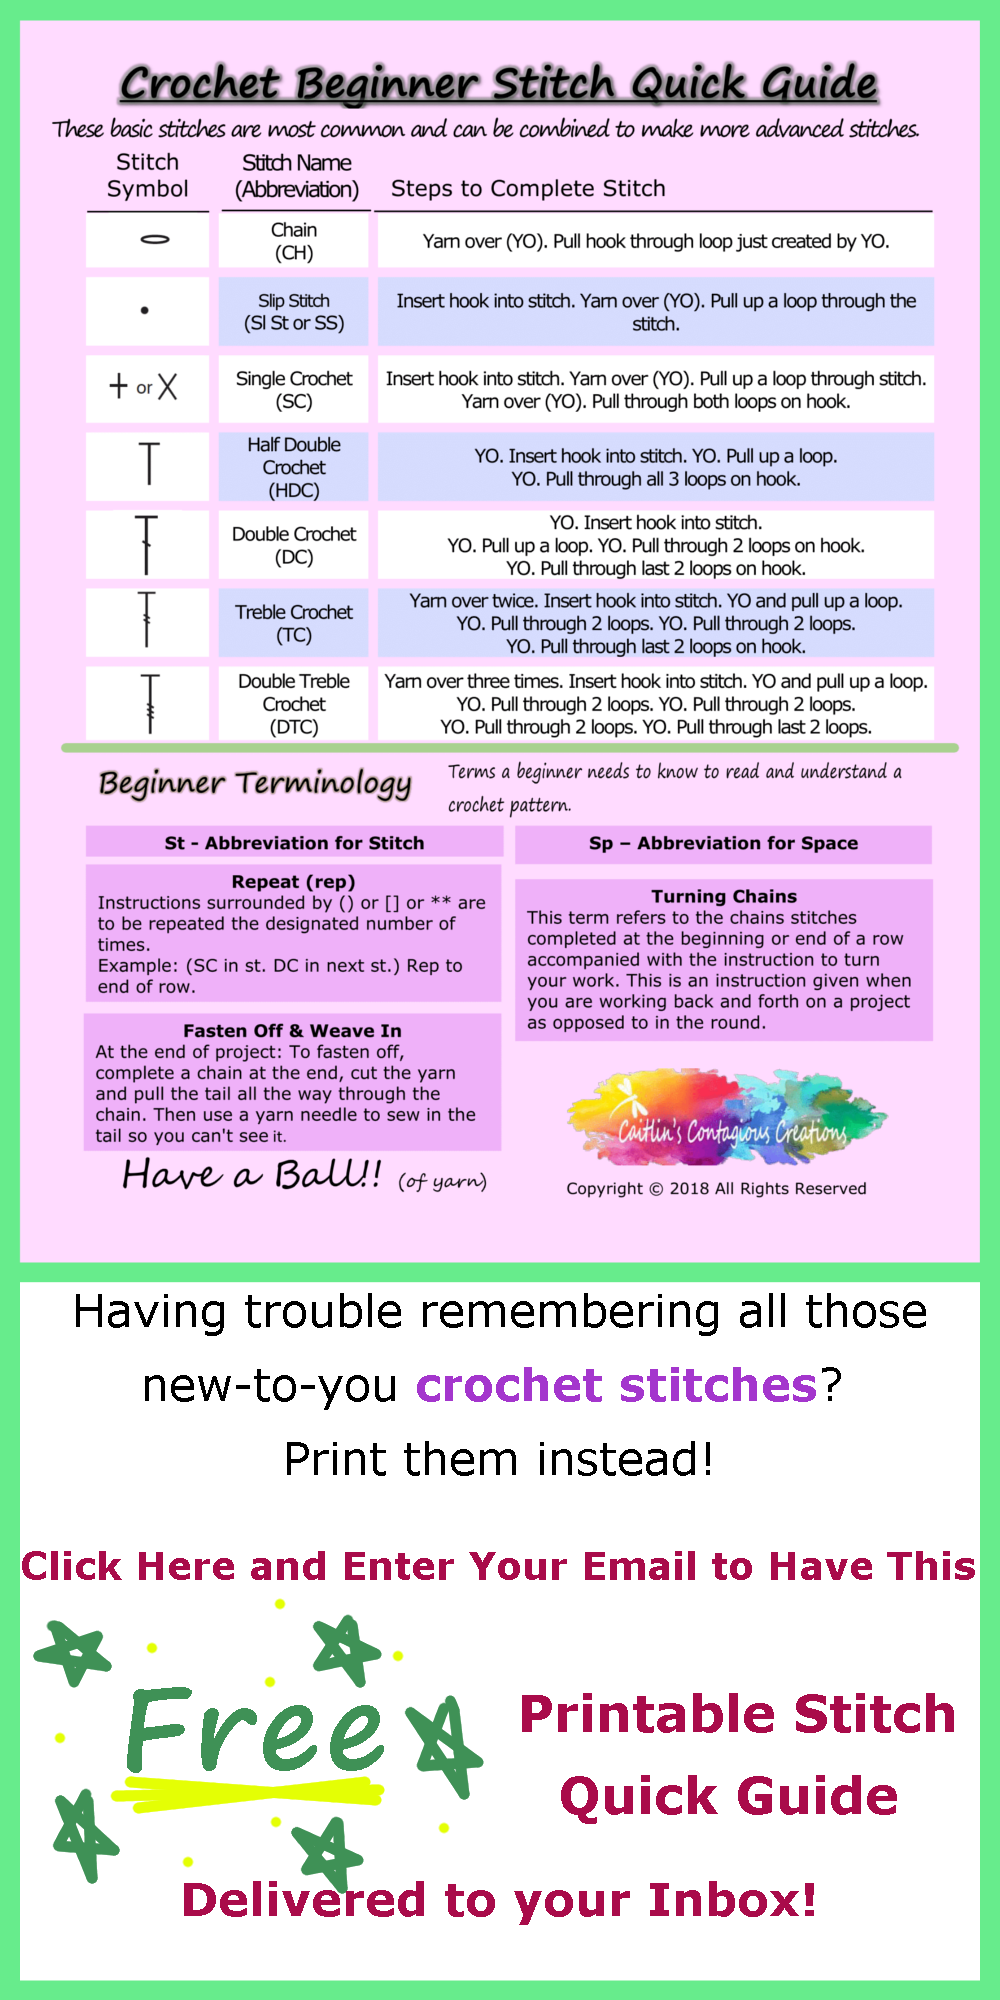 Pin On Free Crochet Printables And Downloads